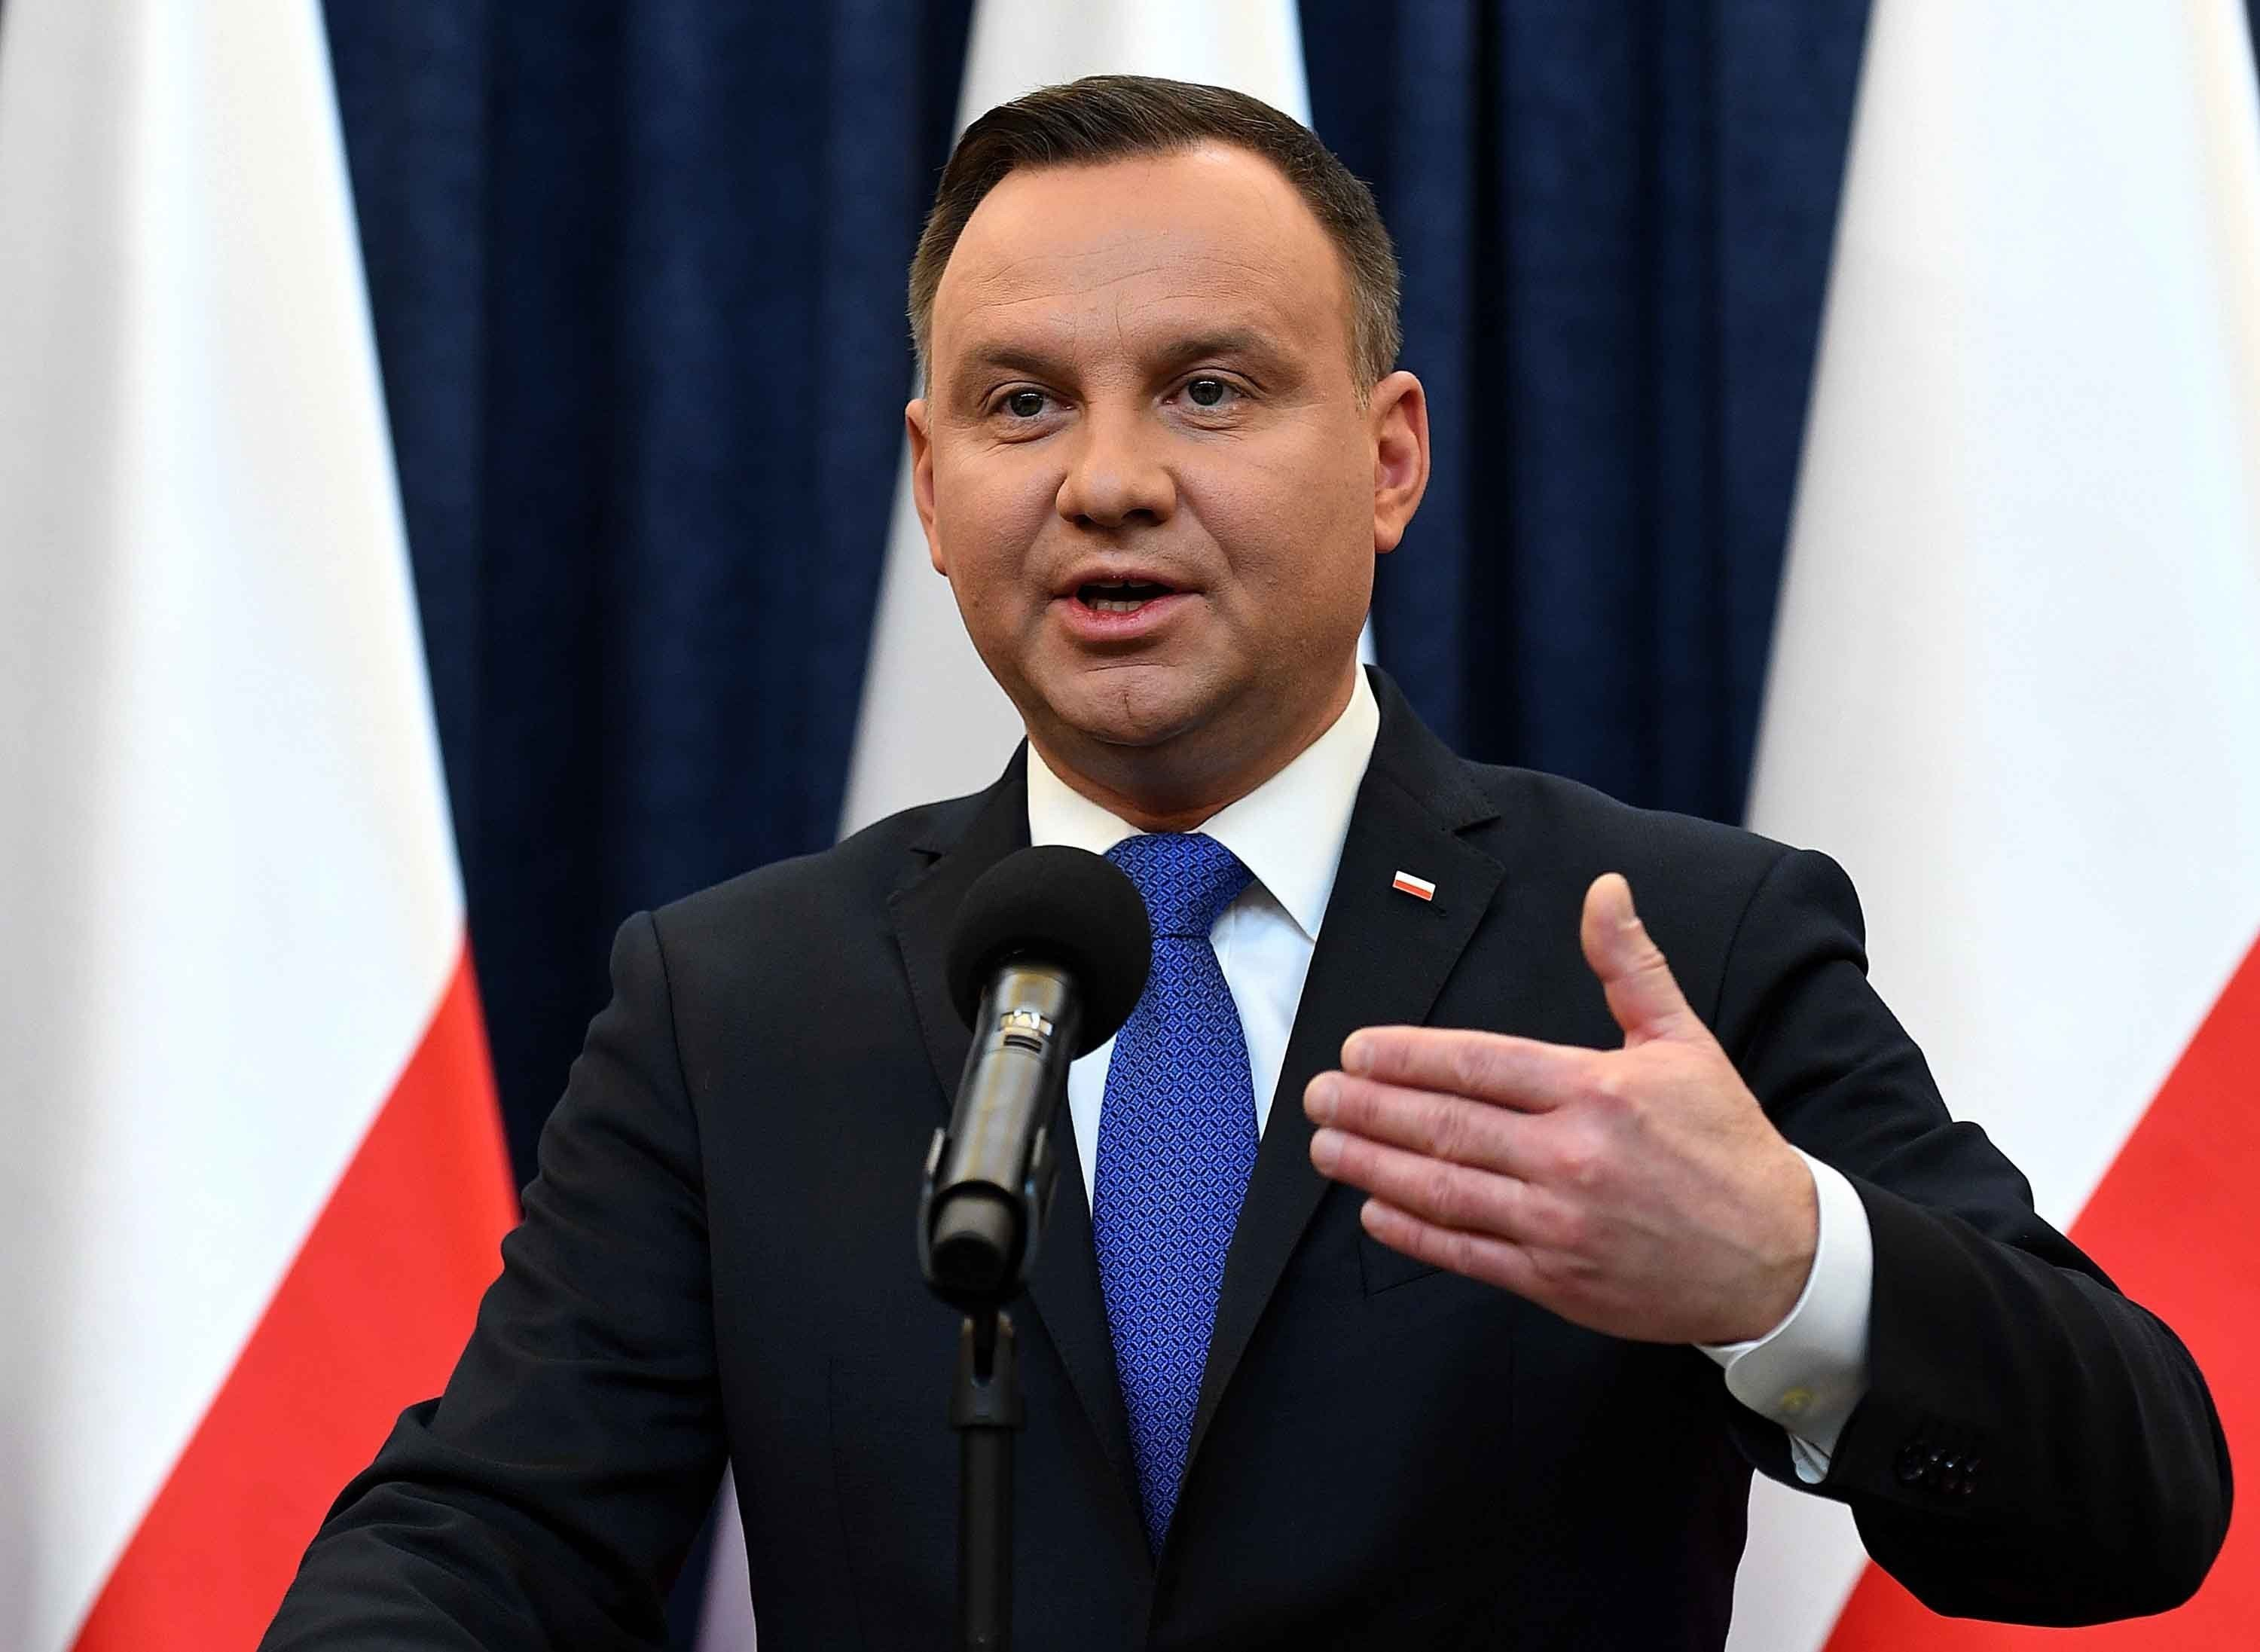 Polish President Andrzej Duda says he will sign the country's controversial Holocaust bill, but plans to send the bill to the constitutional tribunal for revie